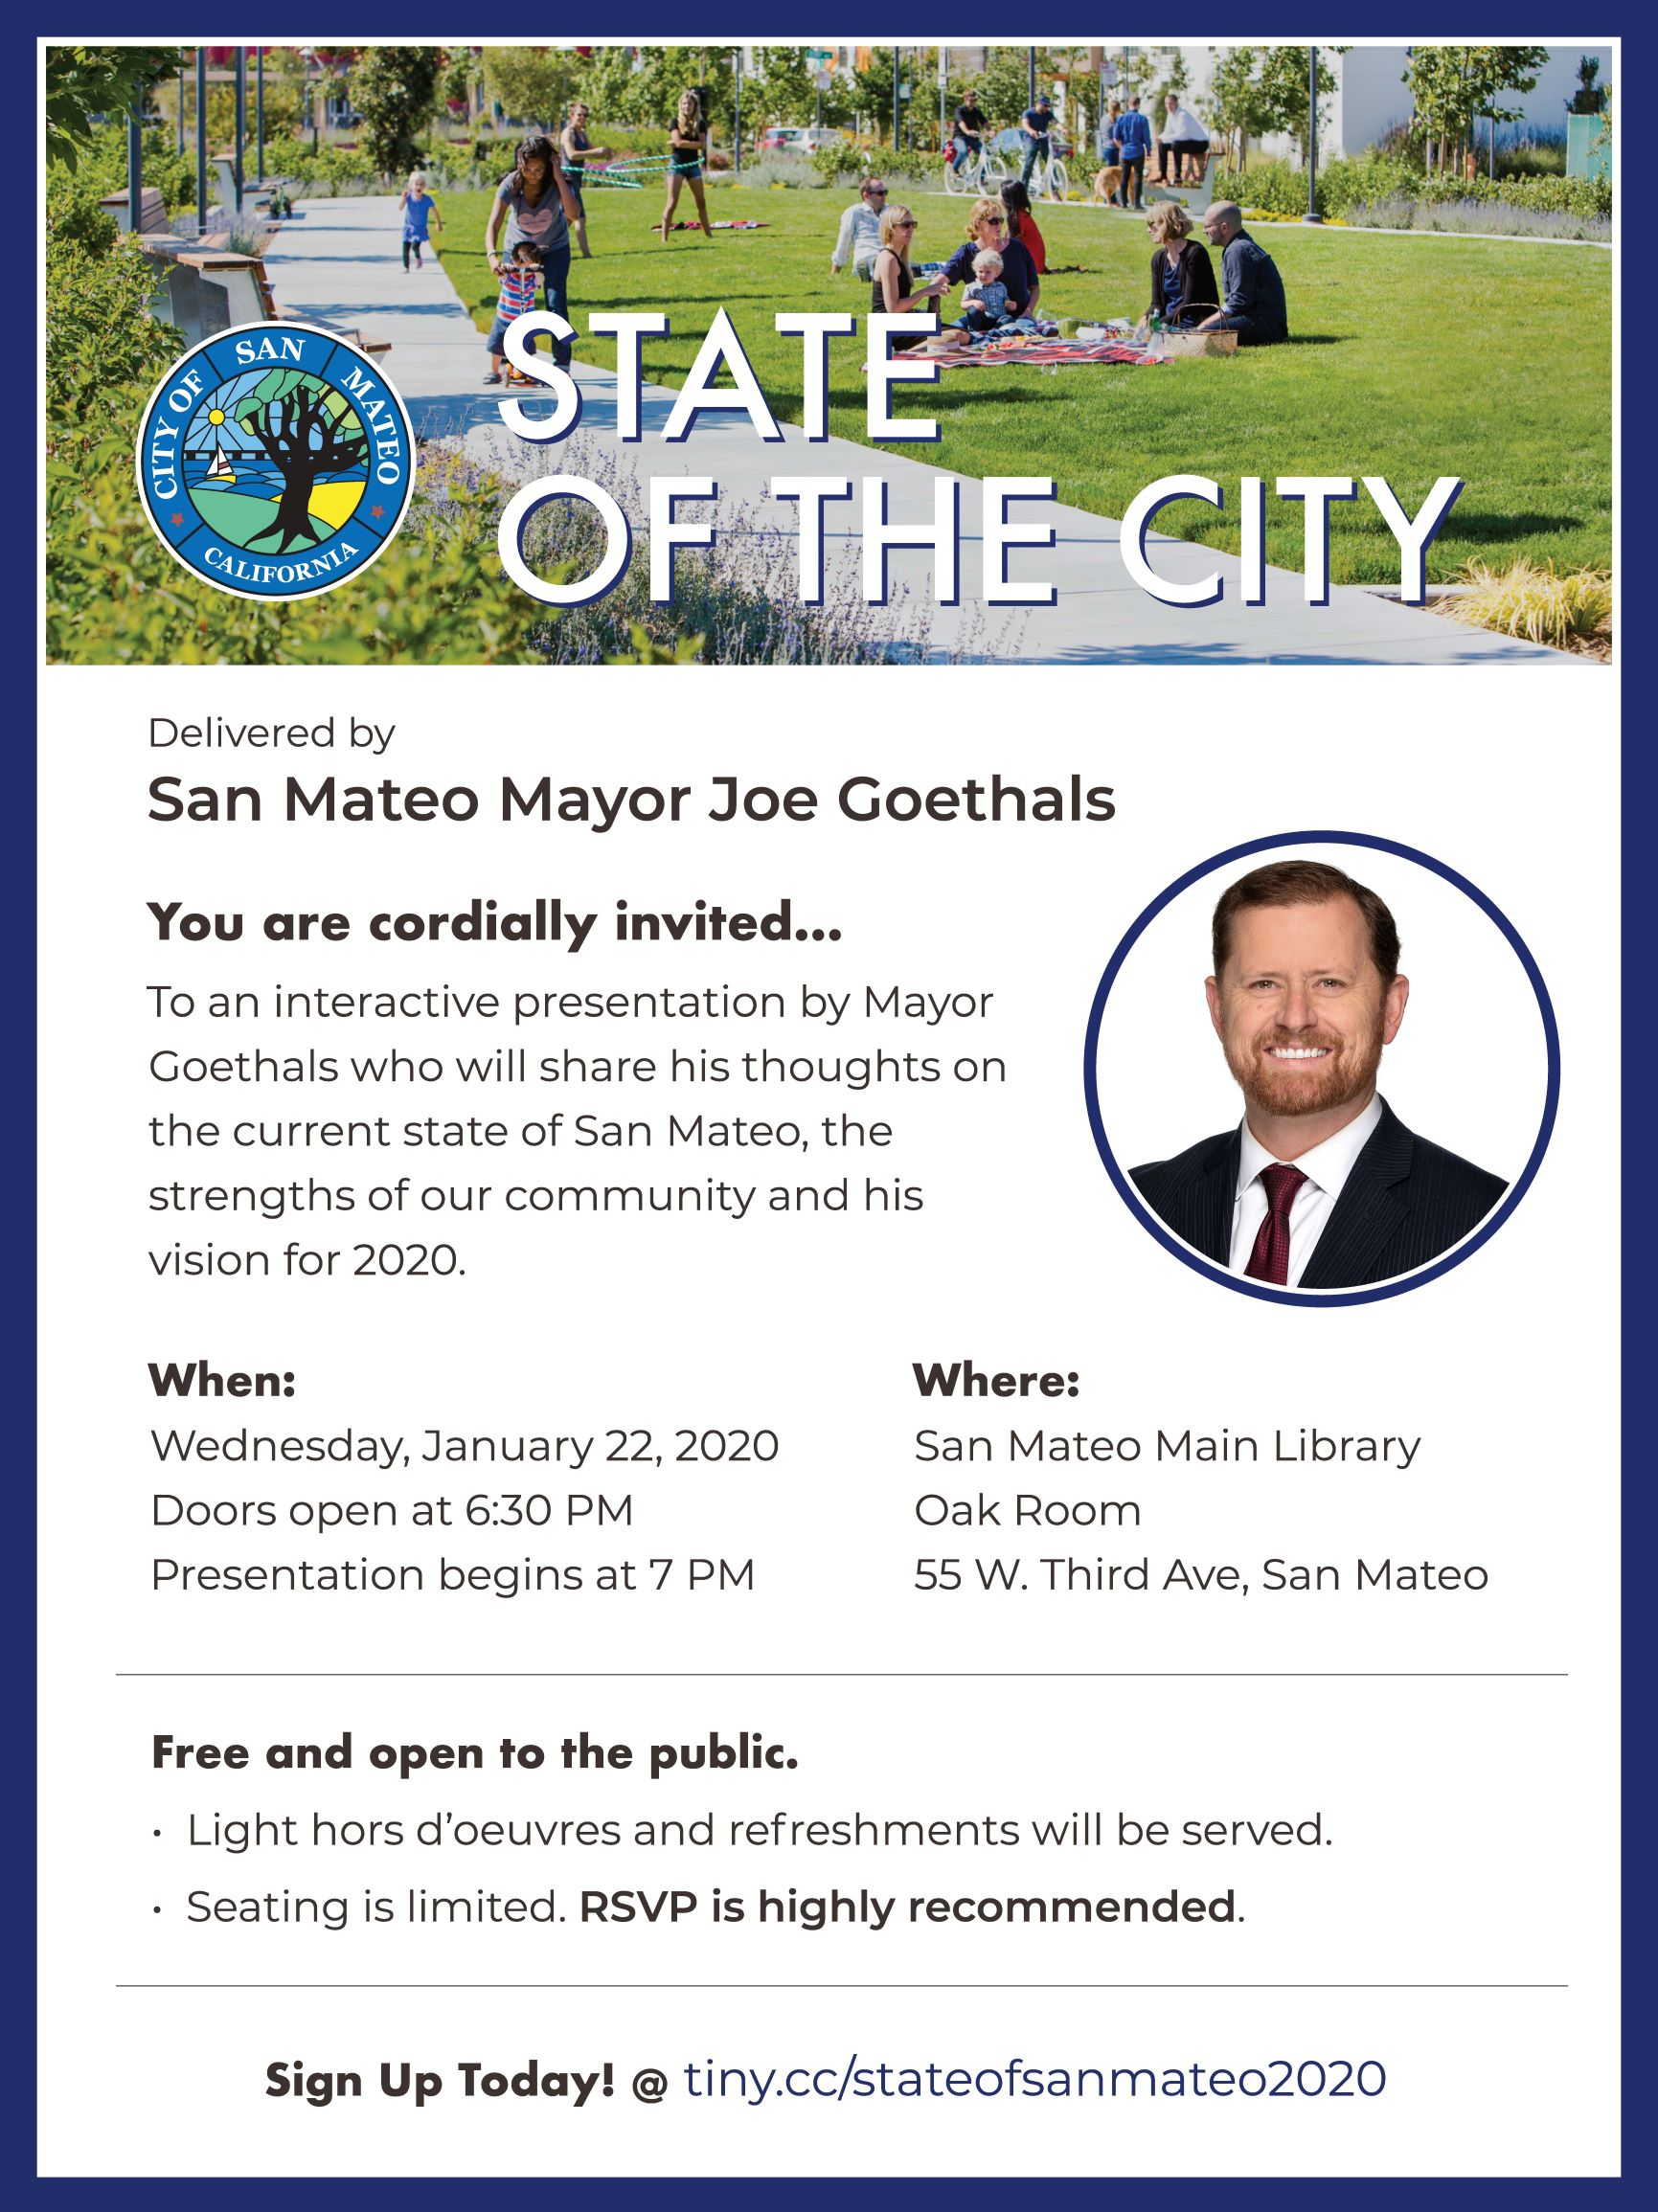 State of the City - San Mateo 2020 Flyer